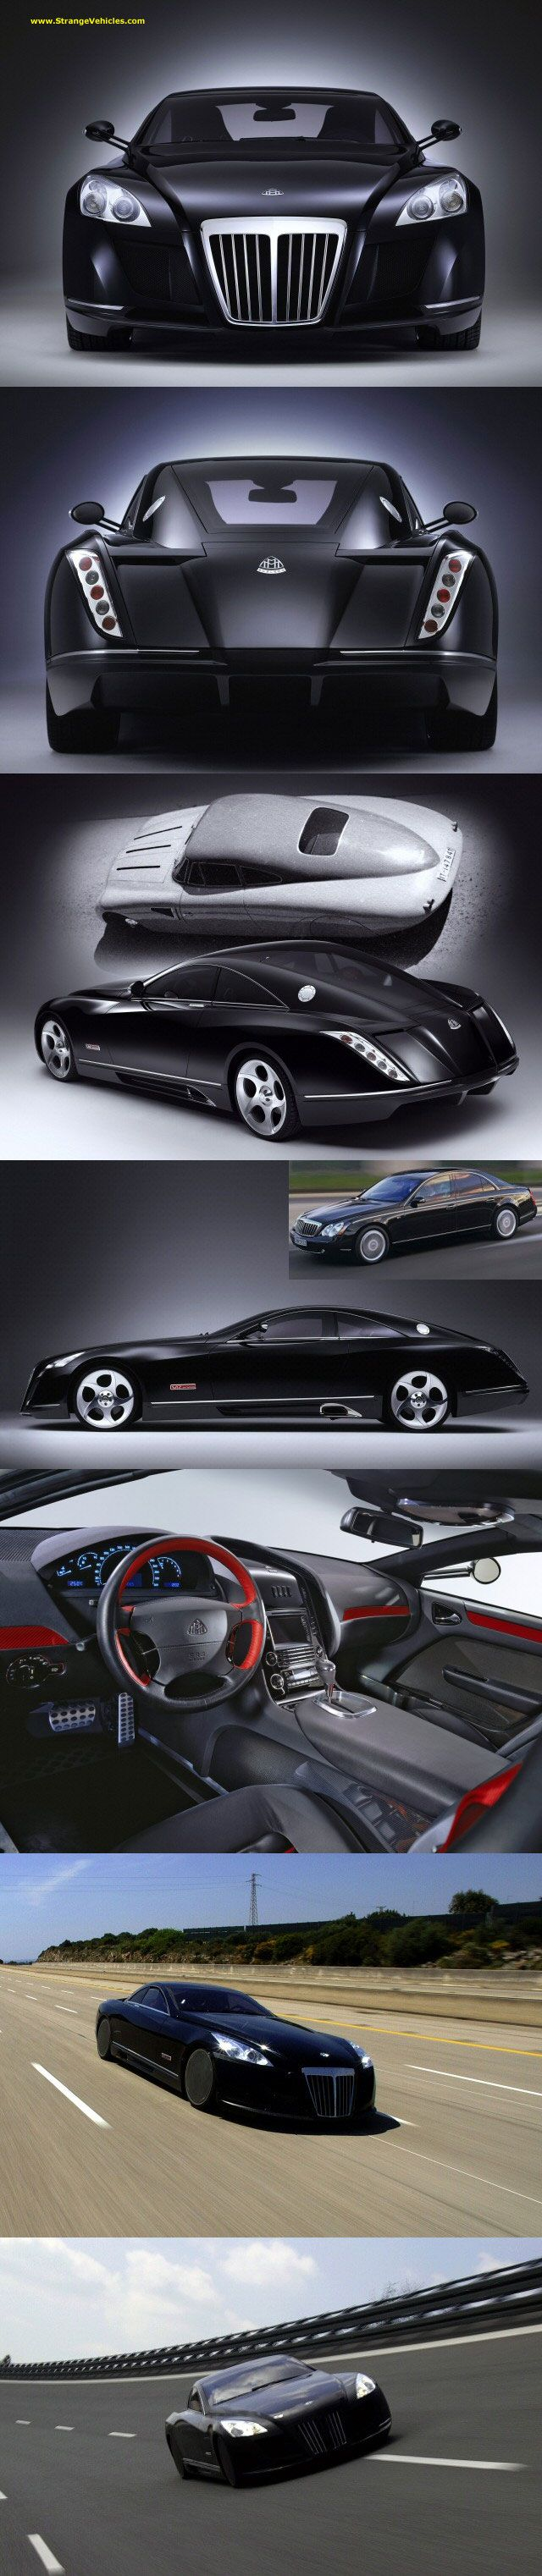 The $8 Million Maybach Exelero (MOST EXPENSIVE IN THE WORLD)